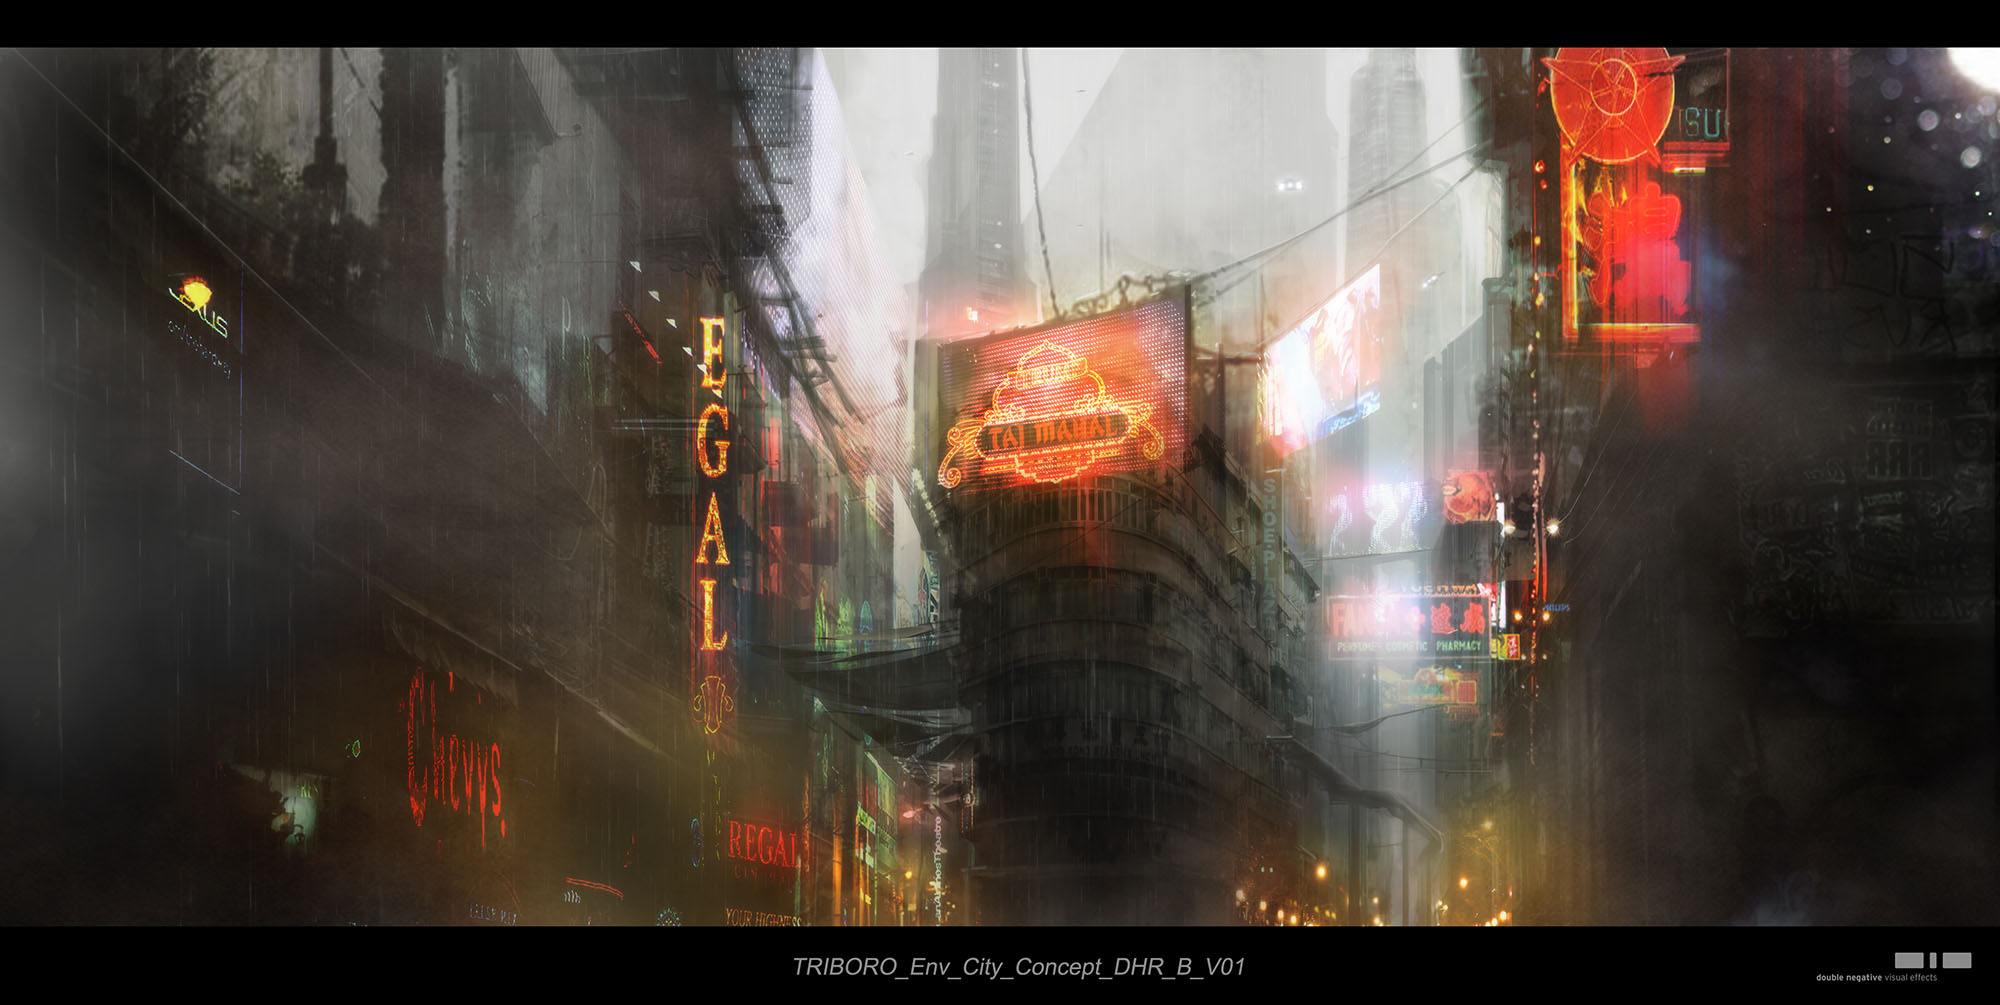 DNEG concept for the city environment in Blade Runner 2049 ((©2017 ALCON ENTERTAINMENT, LLC., WARNER BROS. ENTERTAINMENT INC. AND COLUMBIA TRISTAR MARKETING GROUP, INC. ALL RIGHTS RESERVED.)